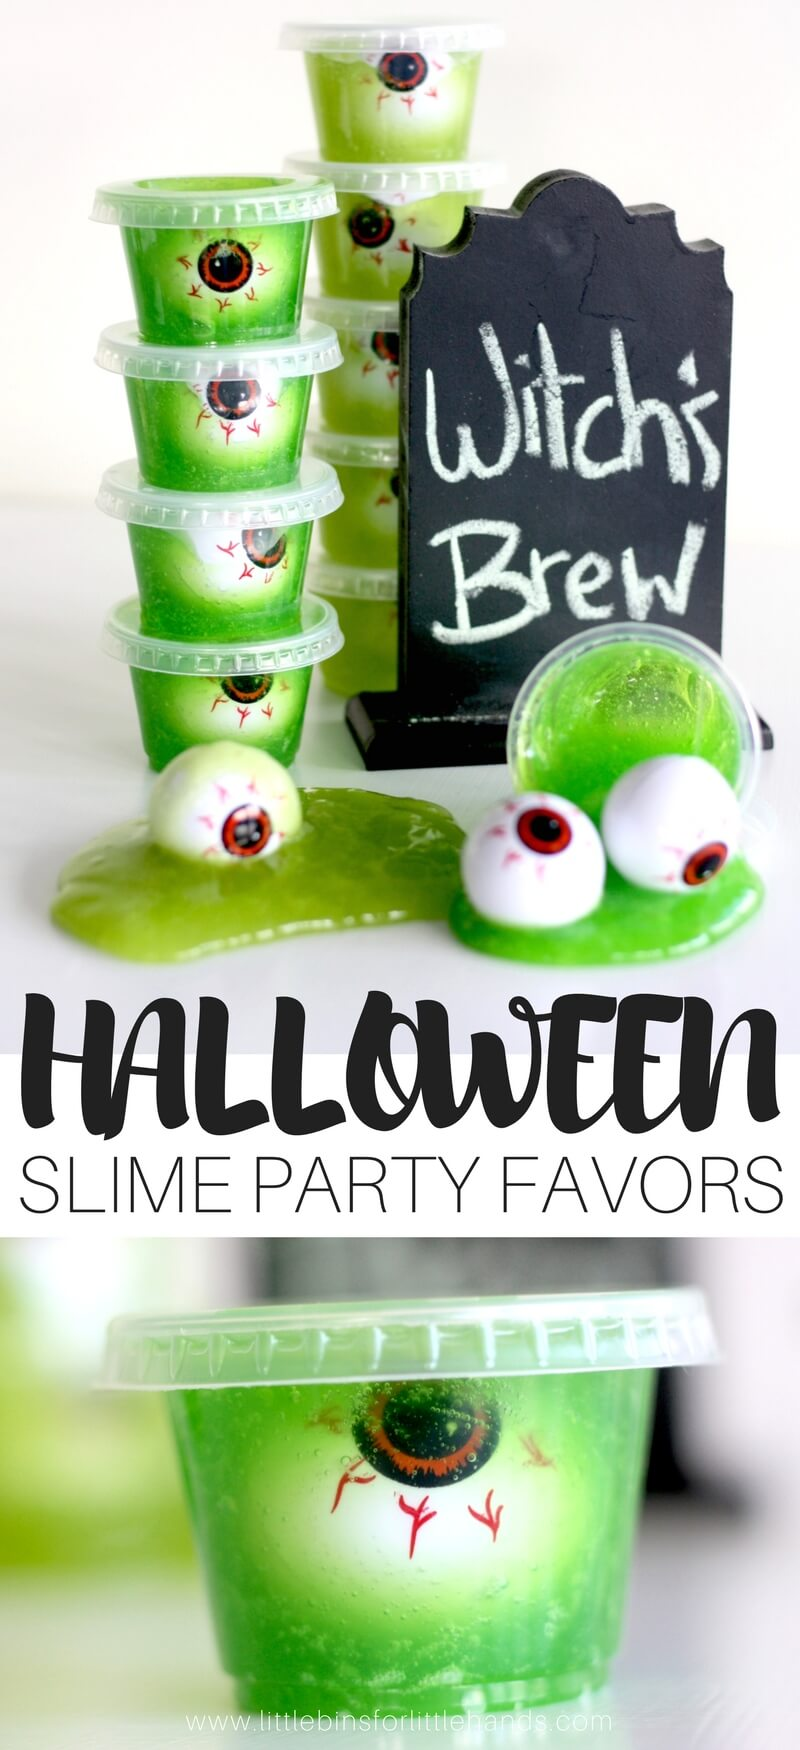 Halloween candy free slime party favors for kids to make and take! Fun candy free halloween slime activity treat for Halloween parties too! We have tons of Halloween slime ideas and Halloween slime recipes for kids!